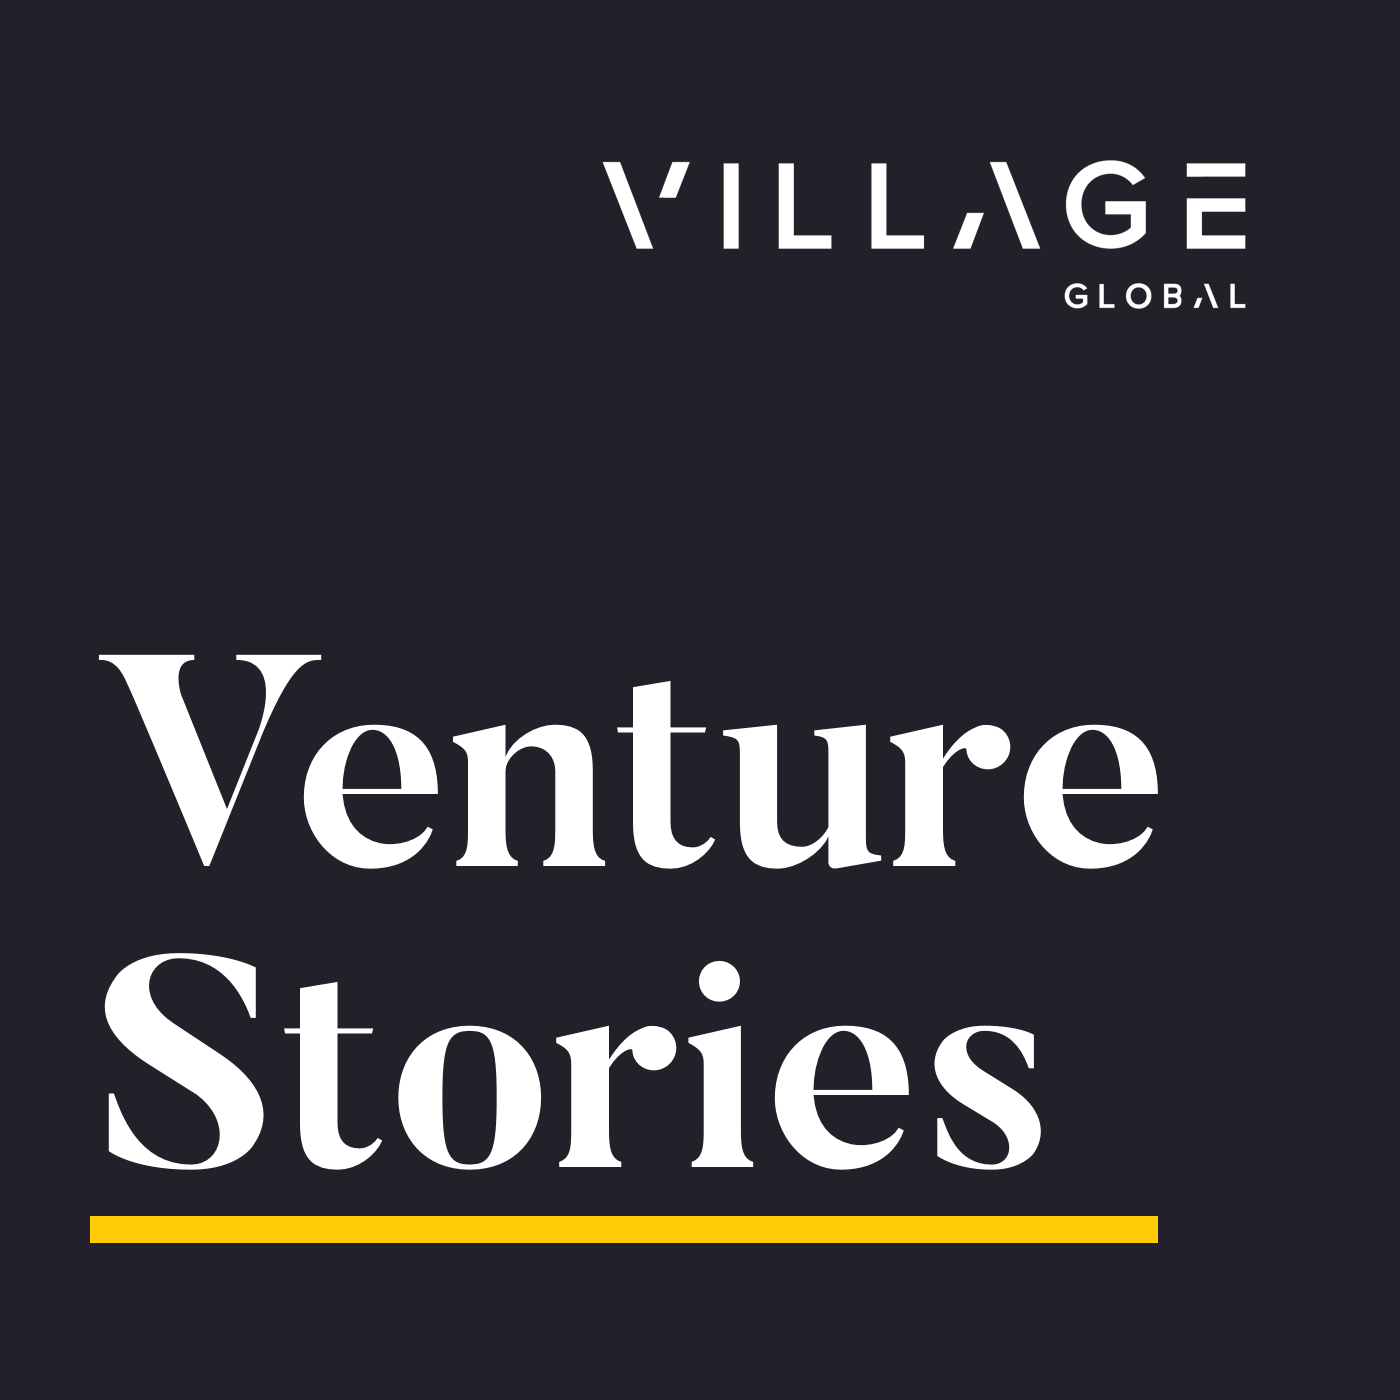 Village Global's Venture Stories